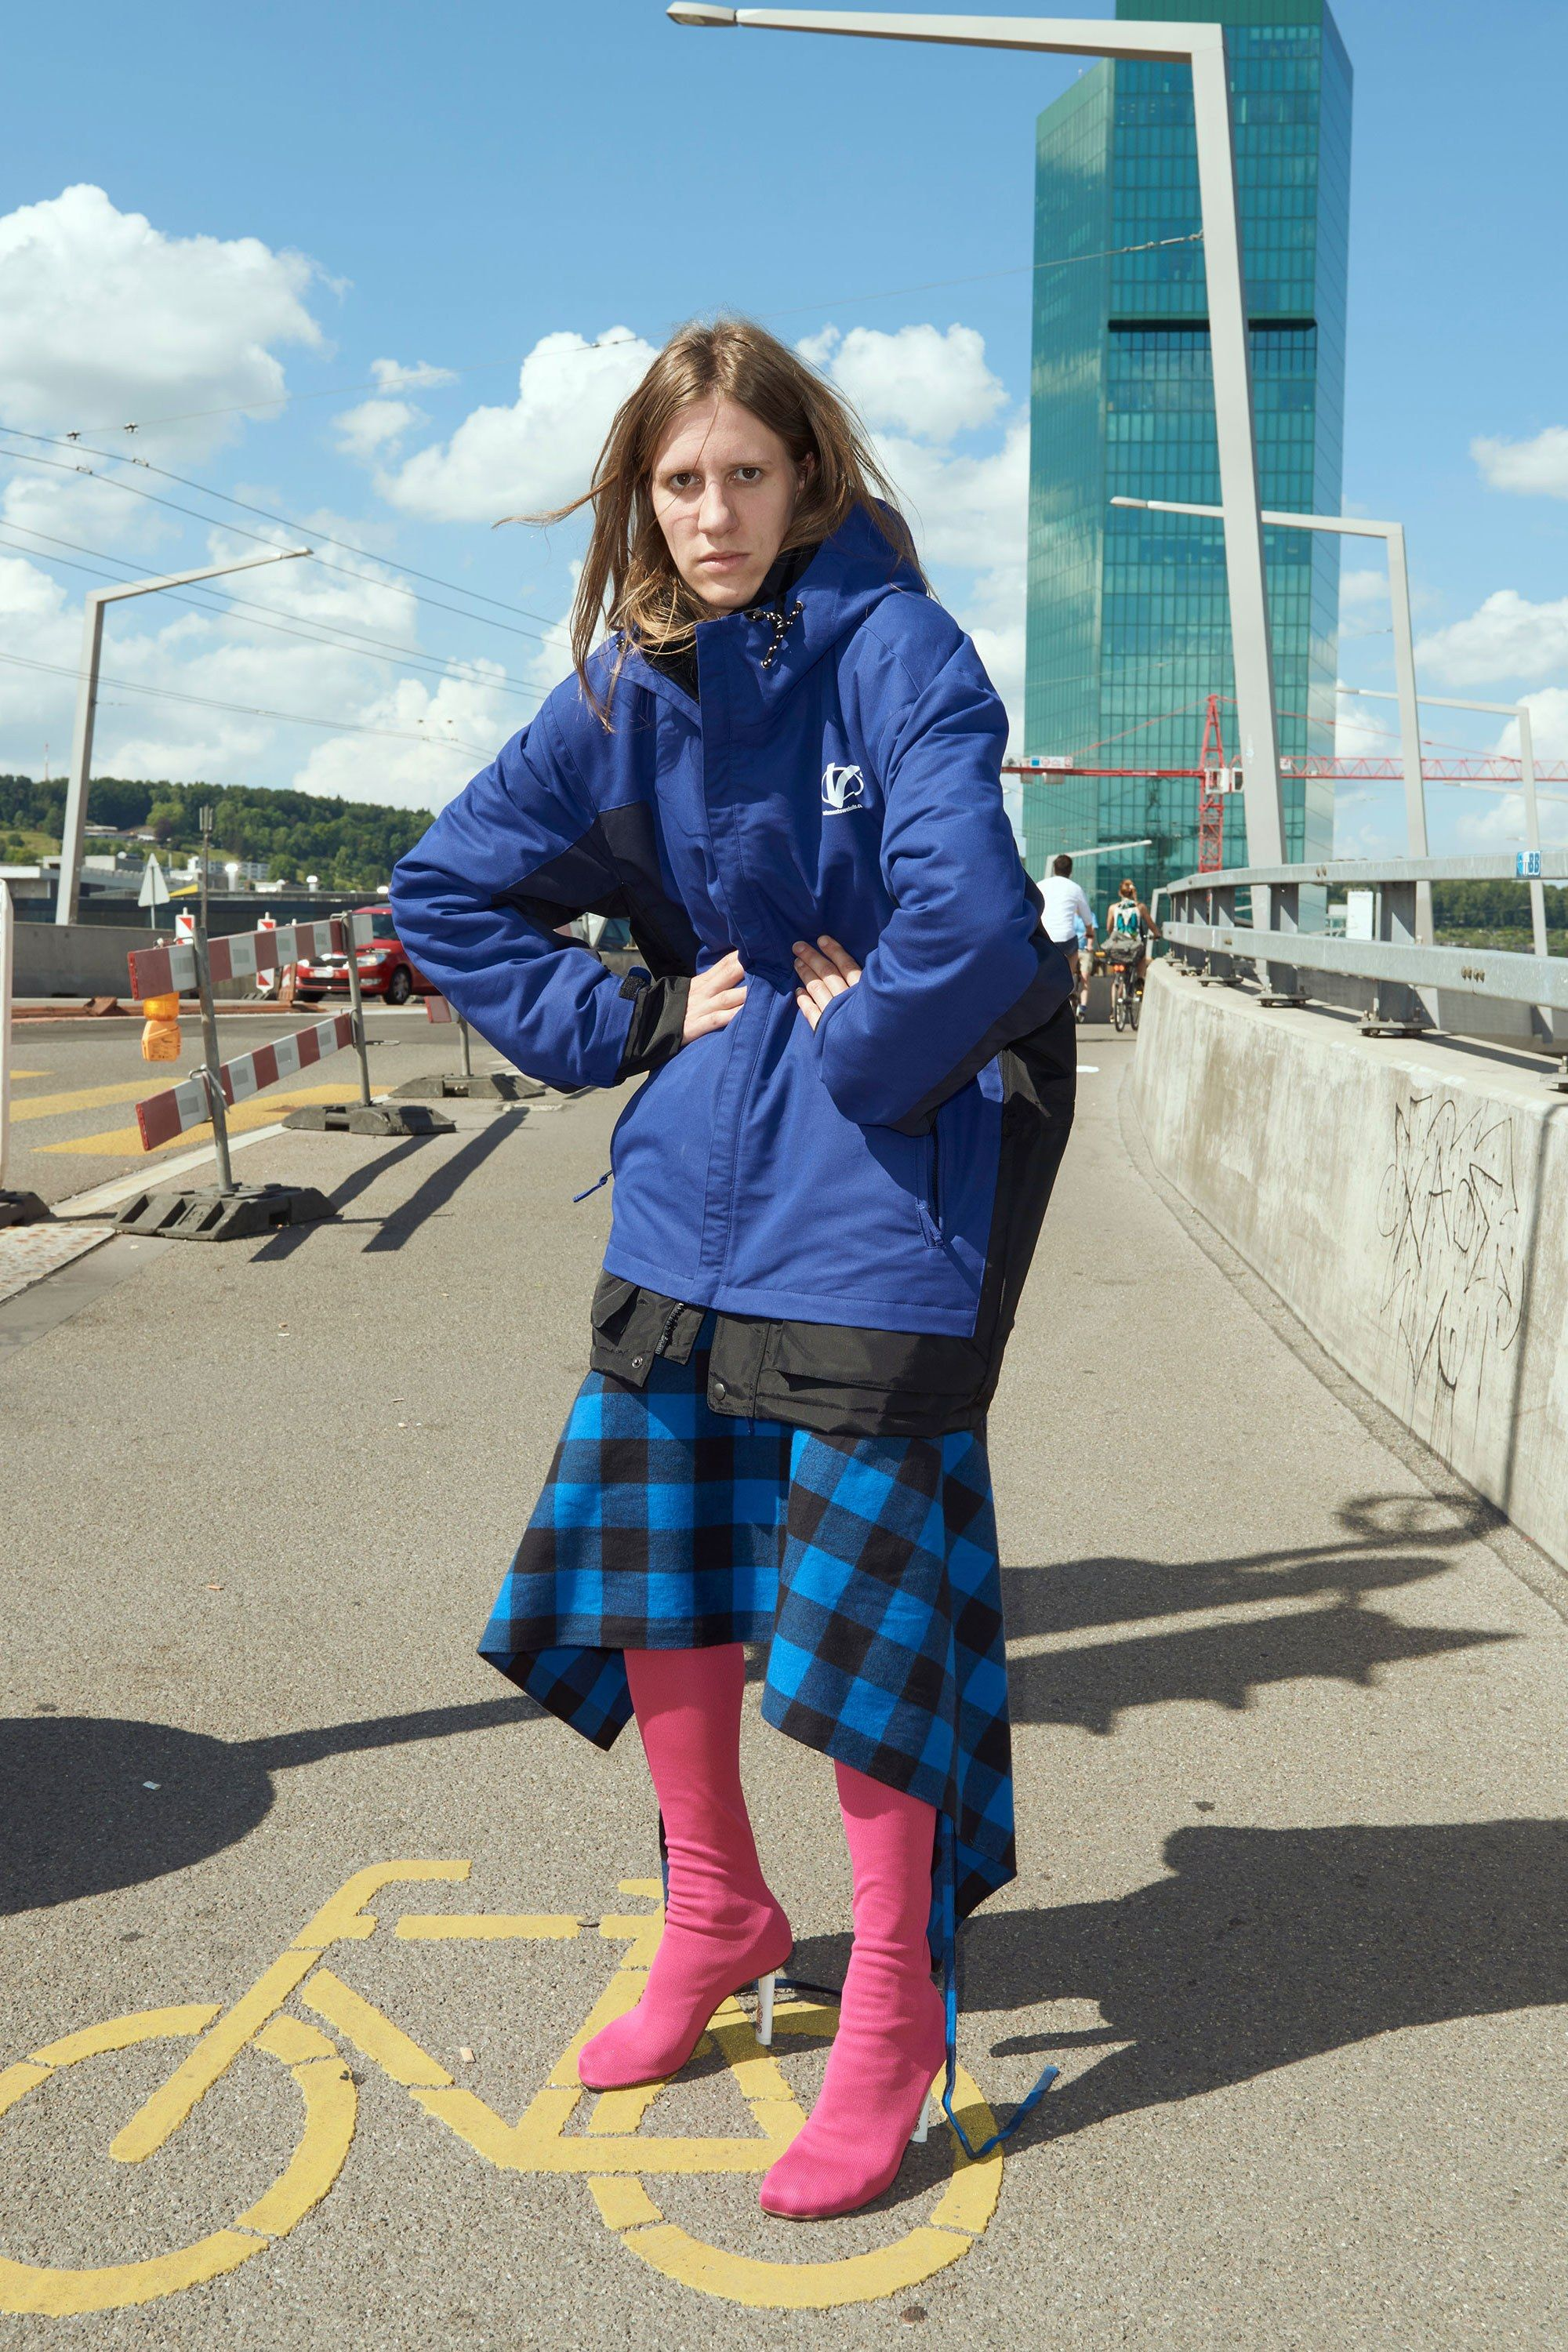 <p>When this superstar designer moves to your quiet hometown and makes you hunch over for Fashion.</p>